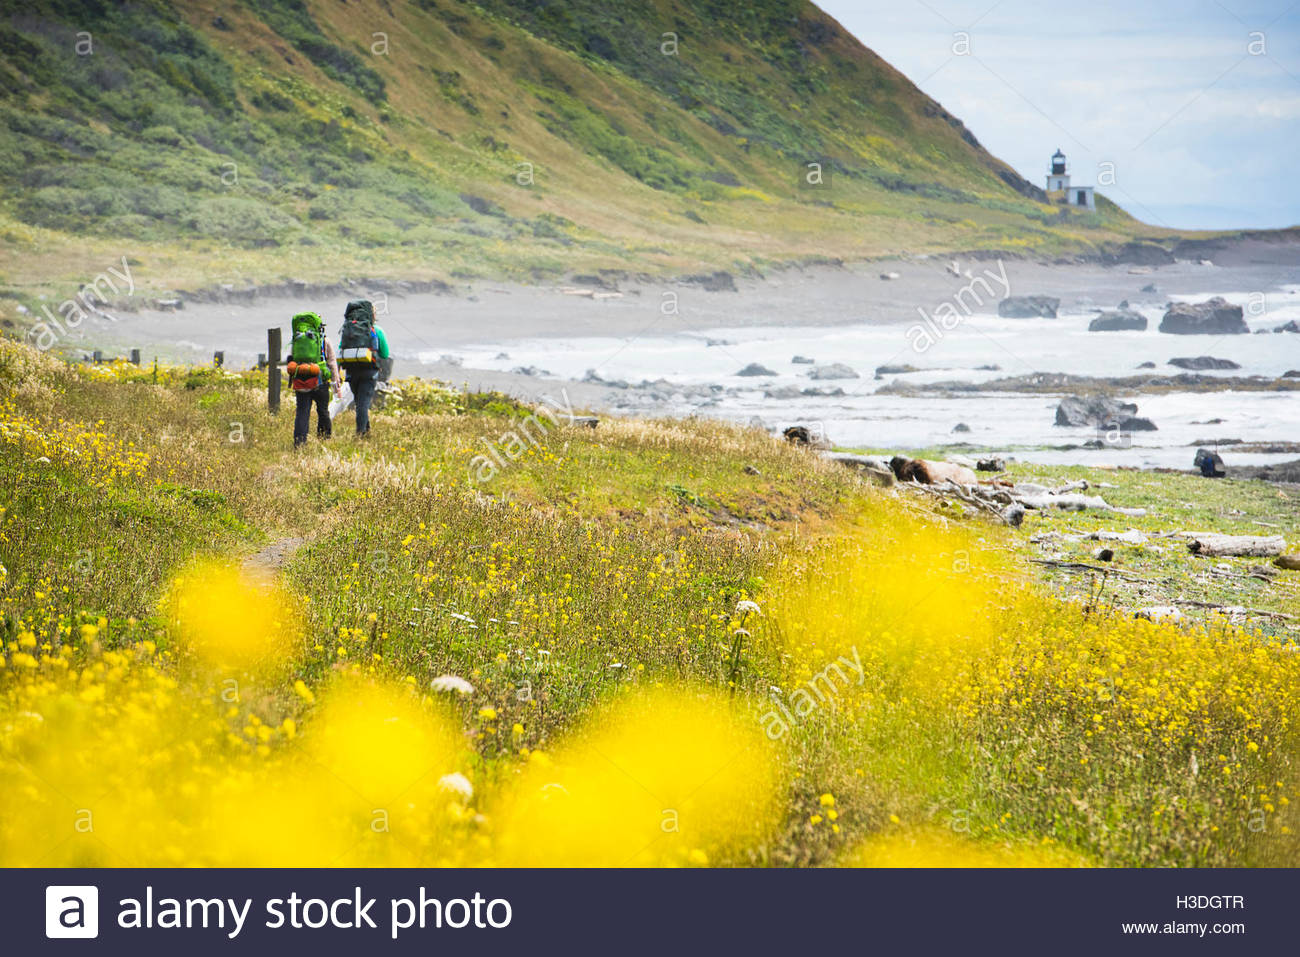 Two backpackers hiking towards a deserted light house. - Stock Image